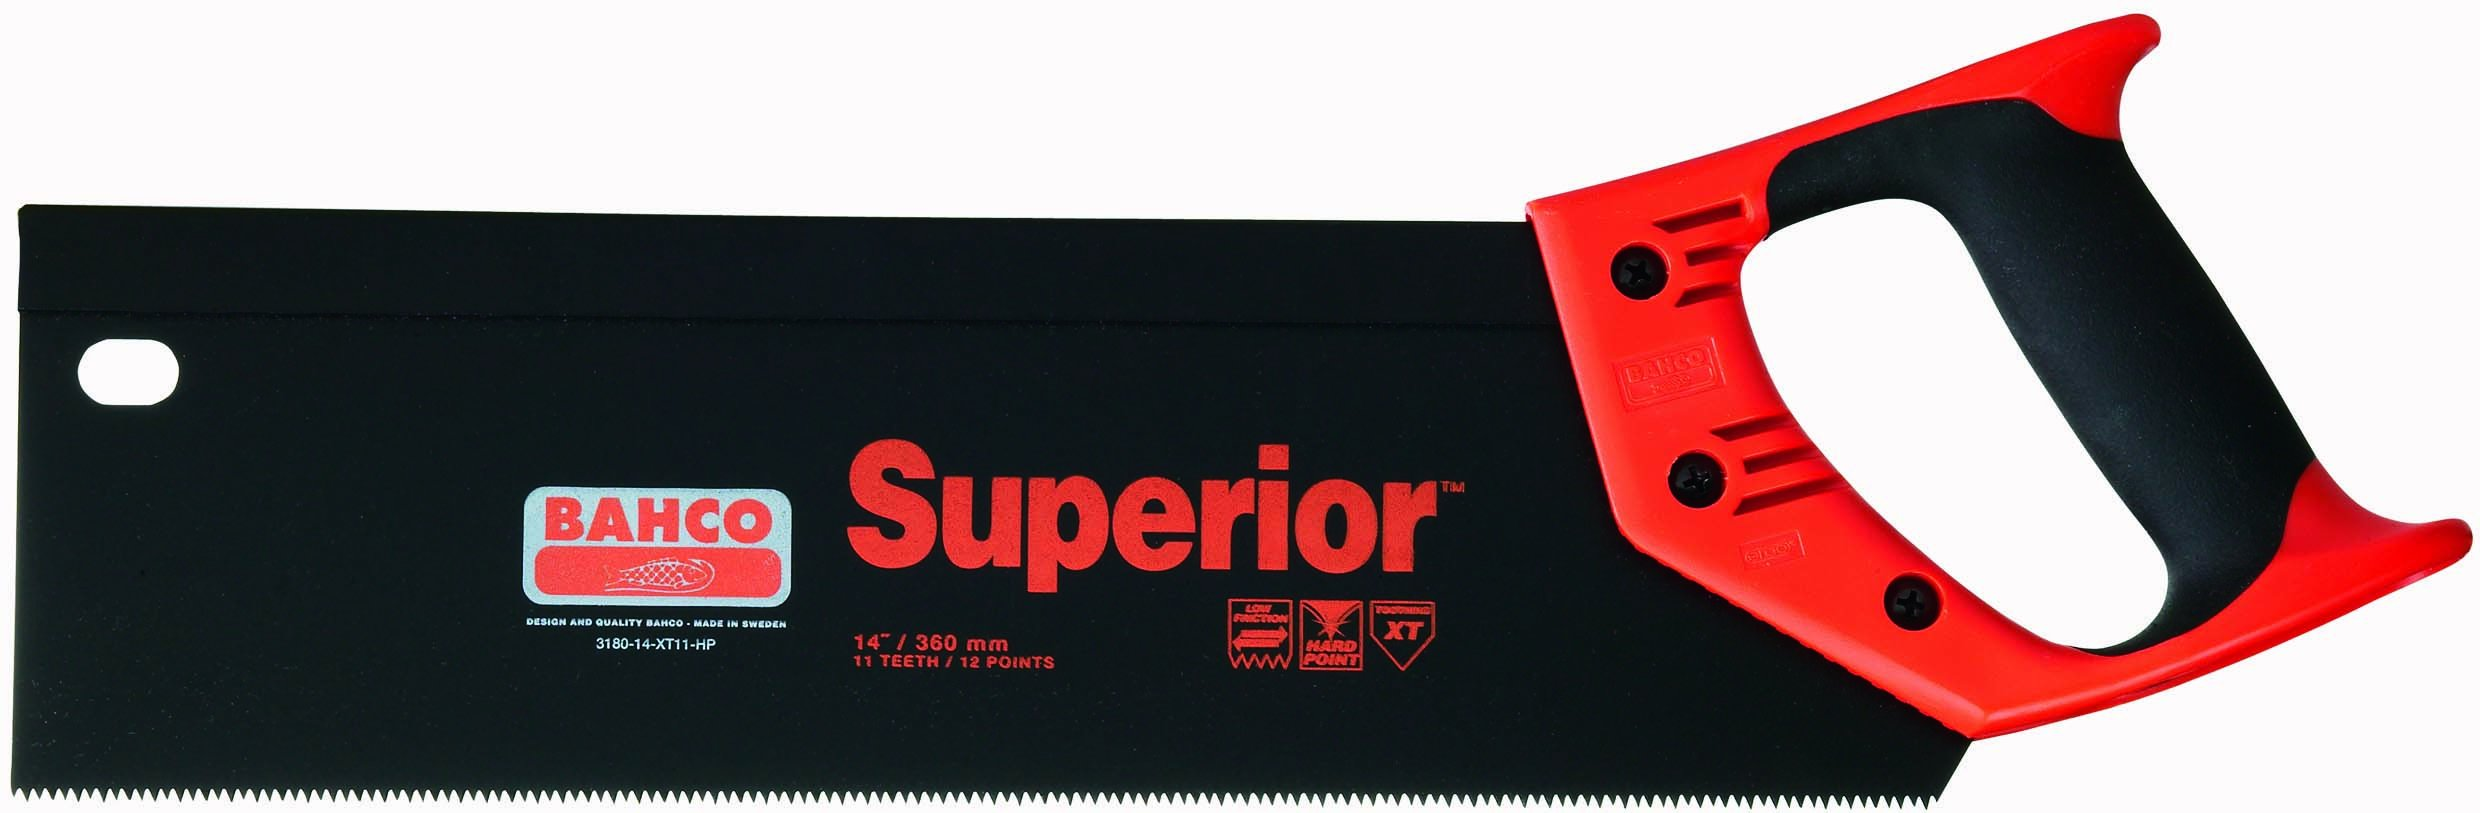 BAHCO 3180-14-XT11-HP 14 Inch Ergo Superior Backsaw with XT Toothing